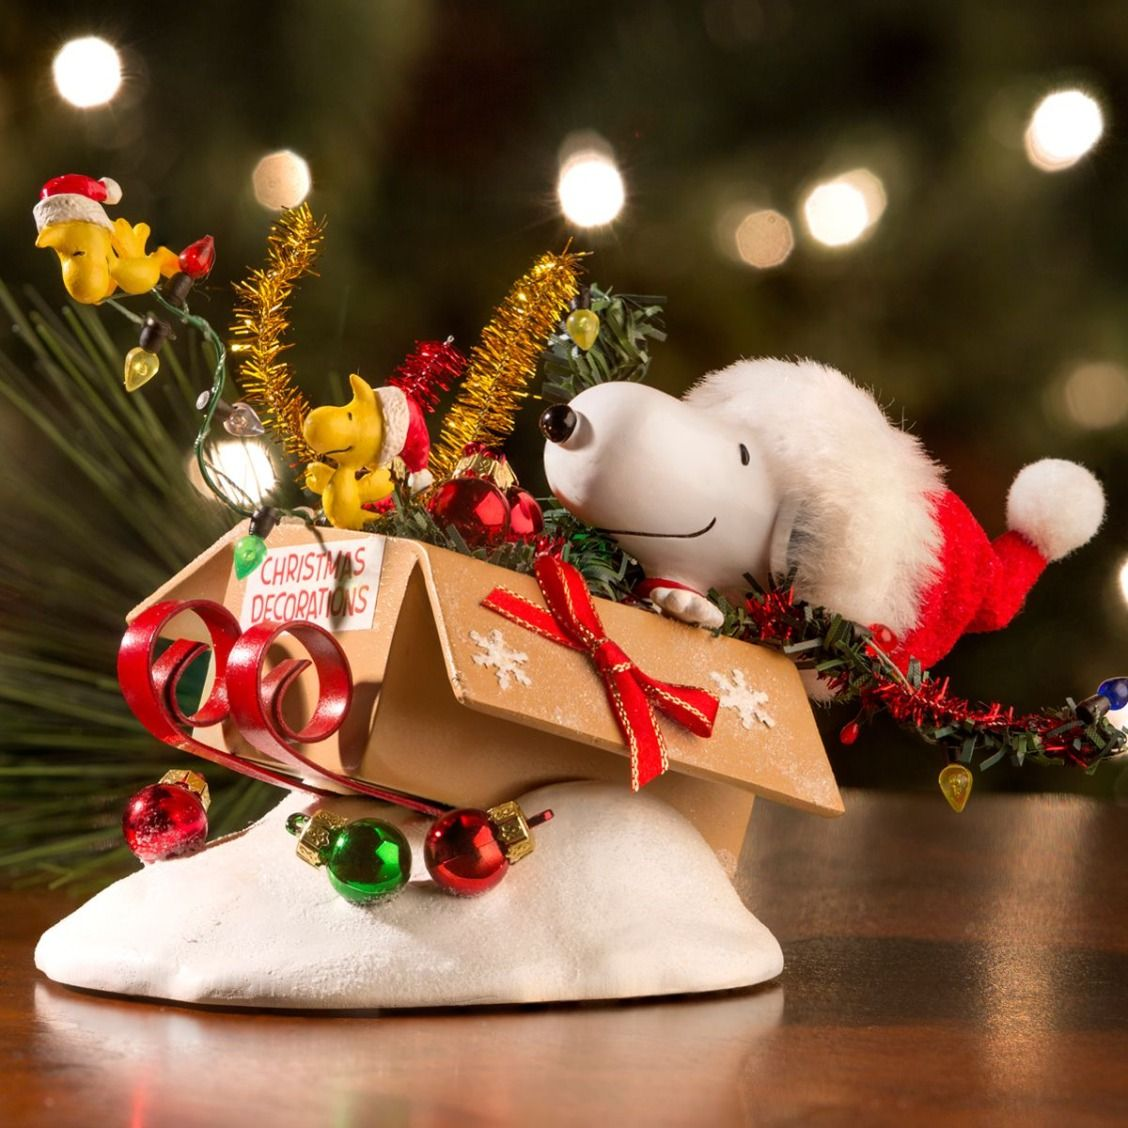 Snoopy outdoor christmas decorations - Snoopy Woodstock And A Pal Jumped In The Decorations Box So Fast That Bows And The Peanutsoutdoor Christmascharlie